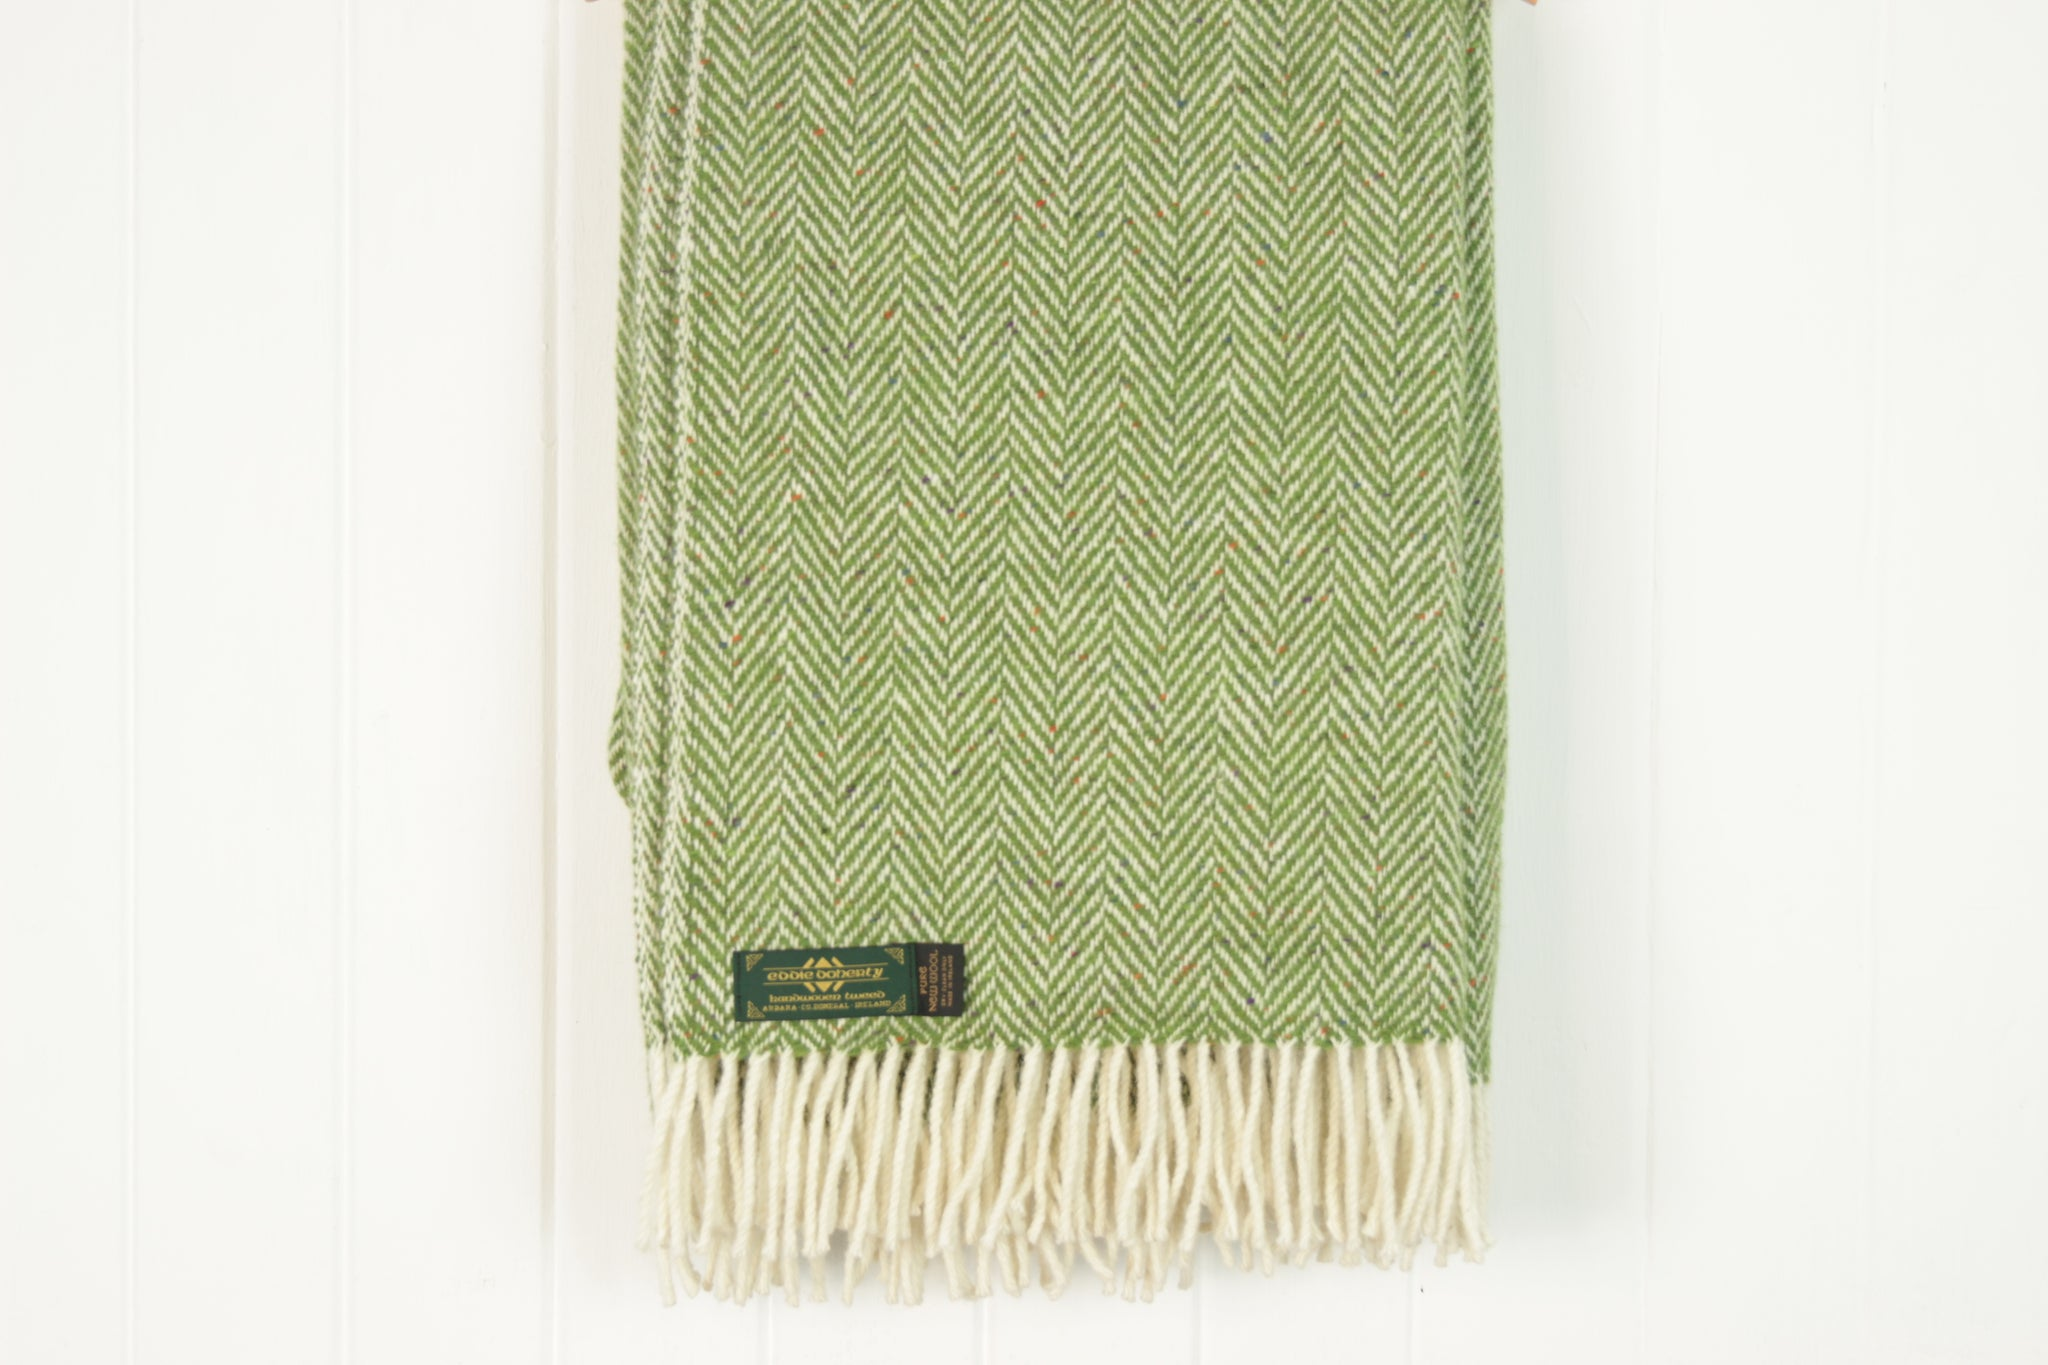 Green Tweed Throw, Eddie Doherty